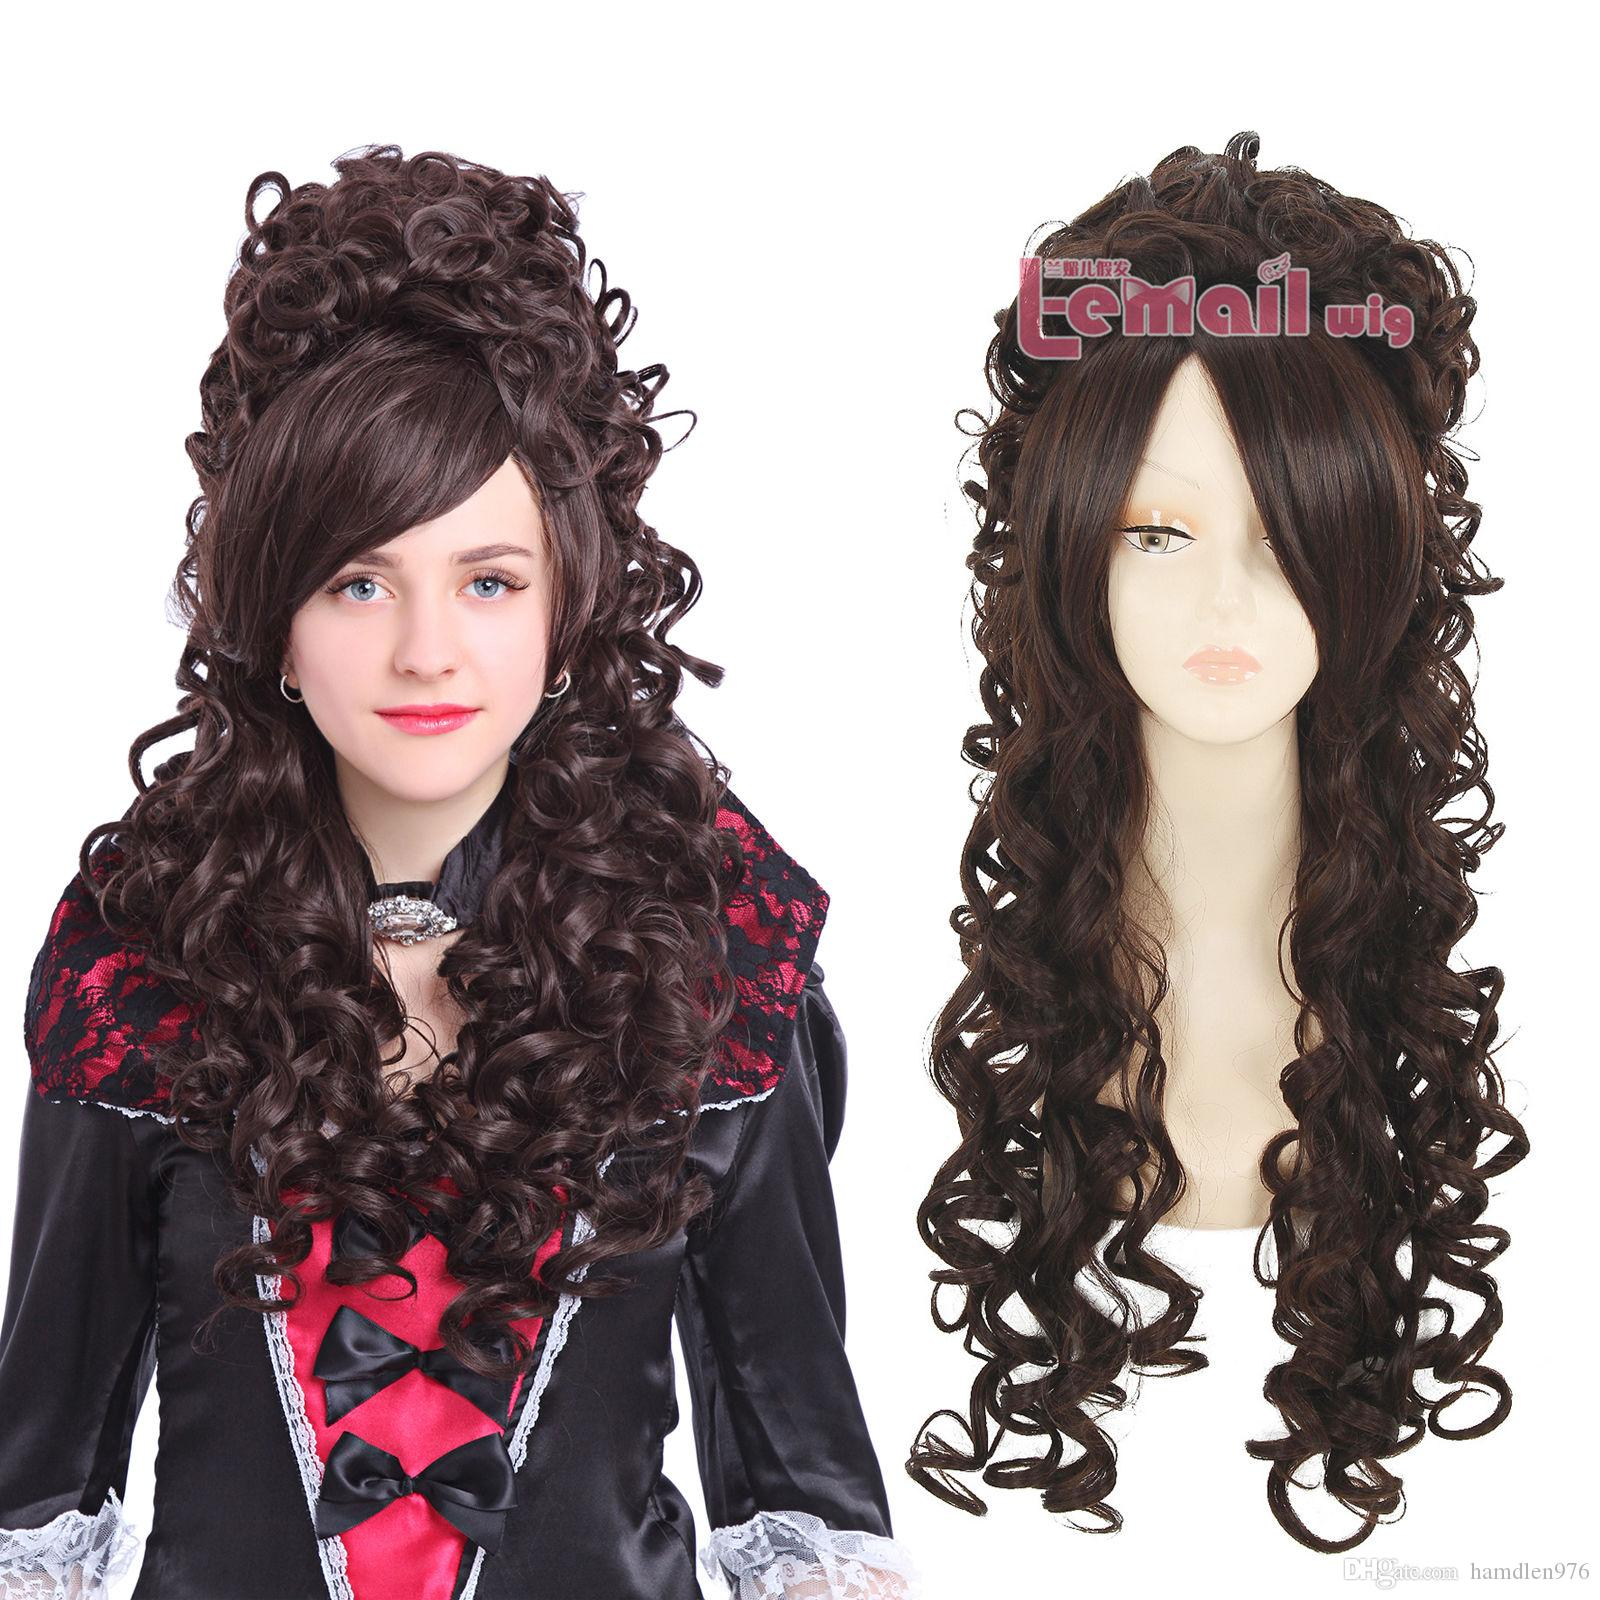 Free shipping>>> Baroque Brown Renaissance Long Wave Curly Cosplay Wig